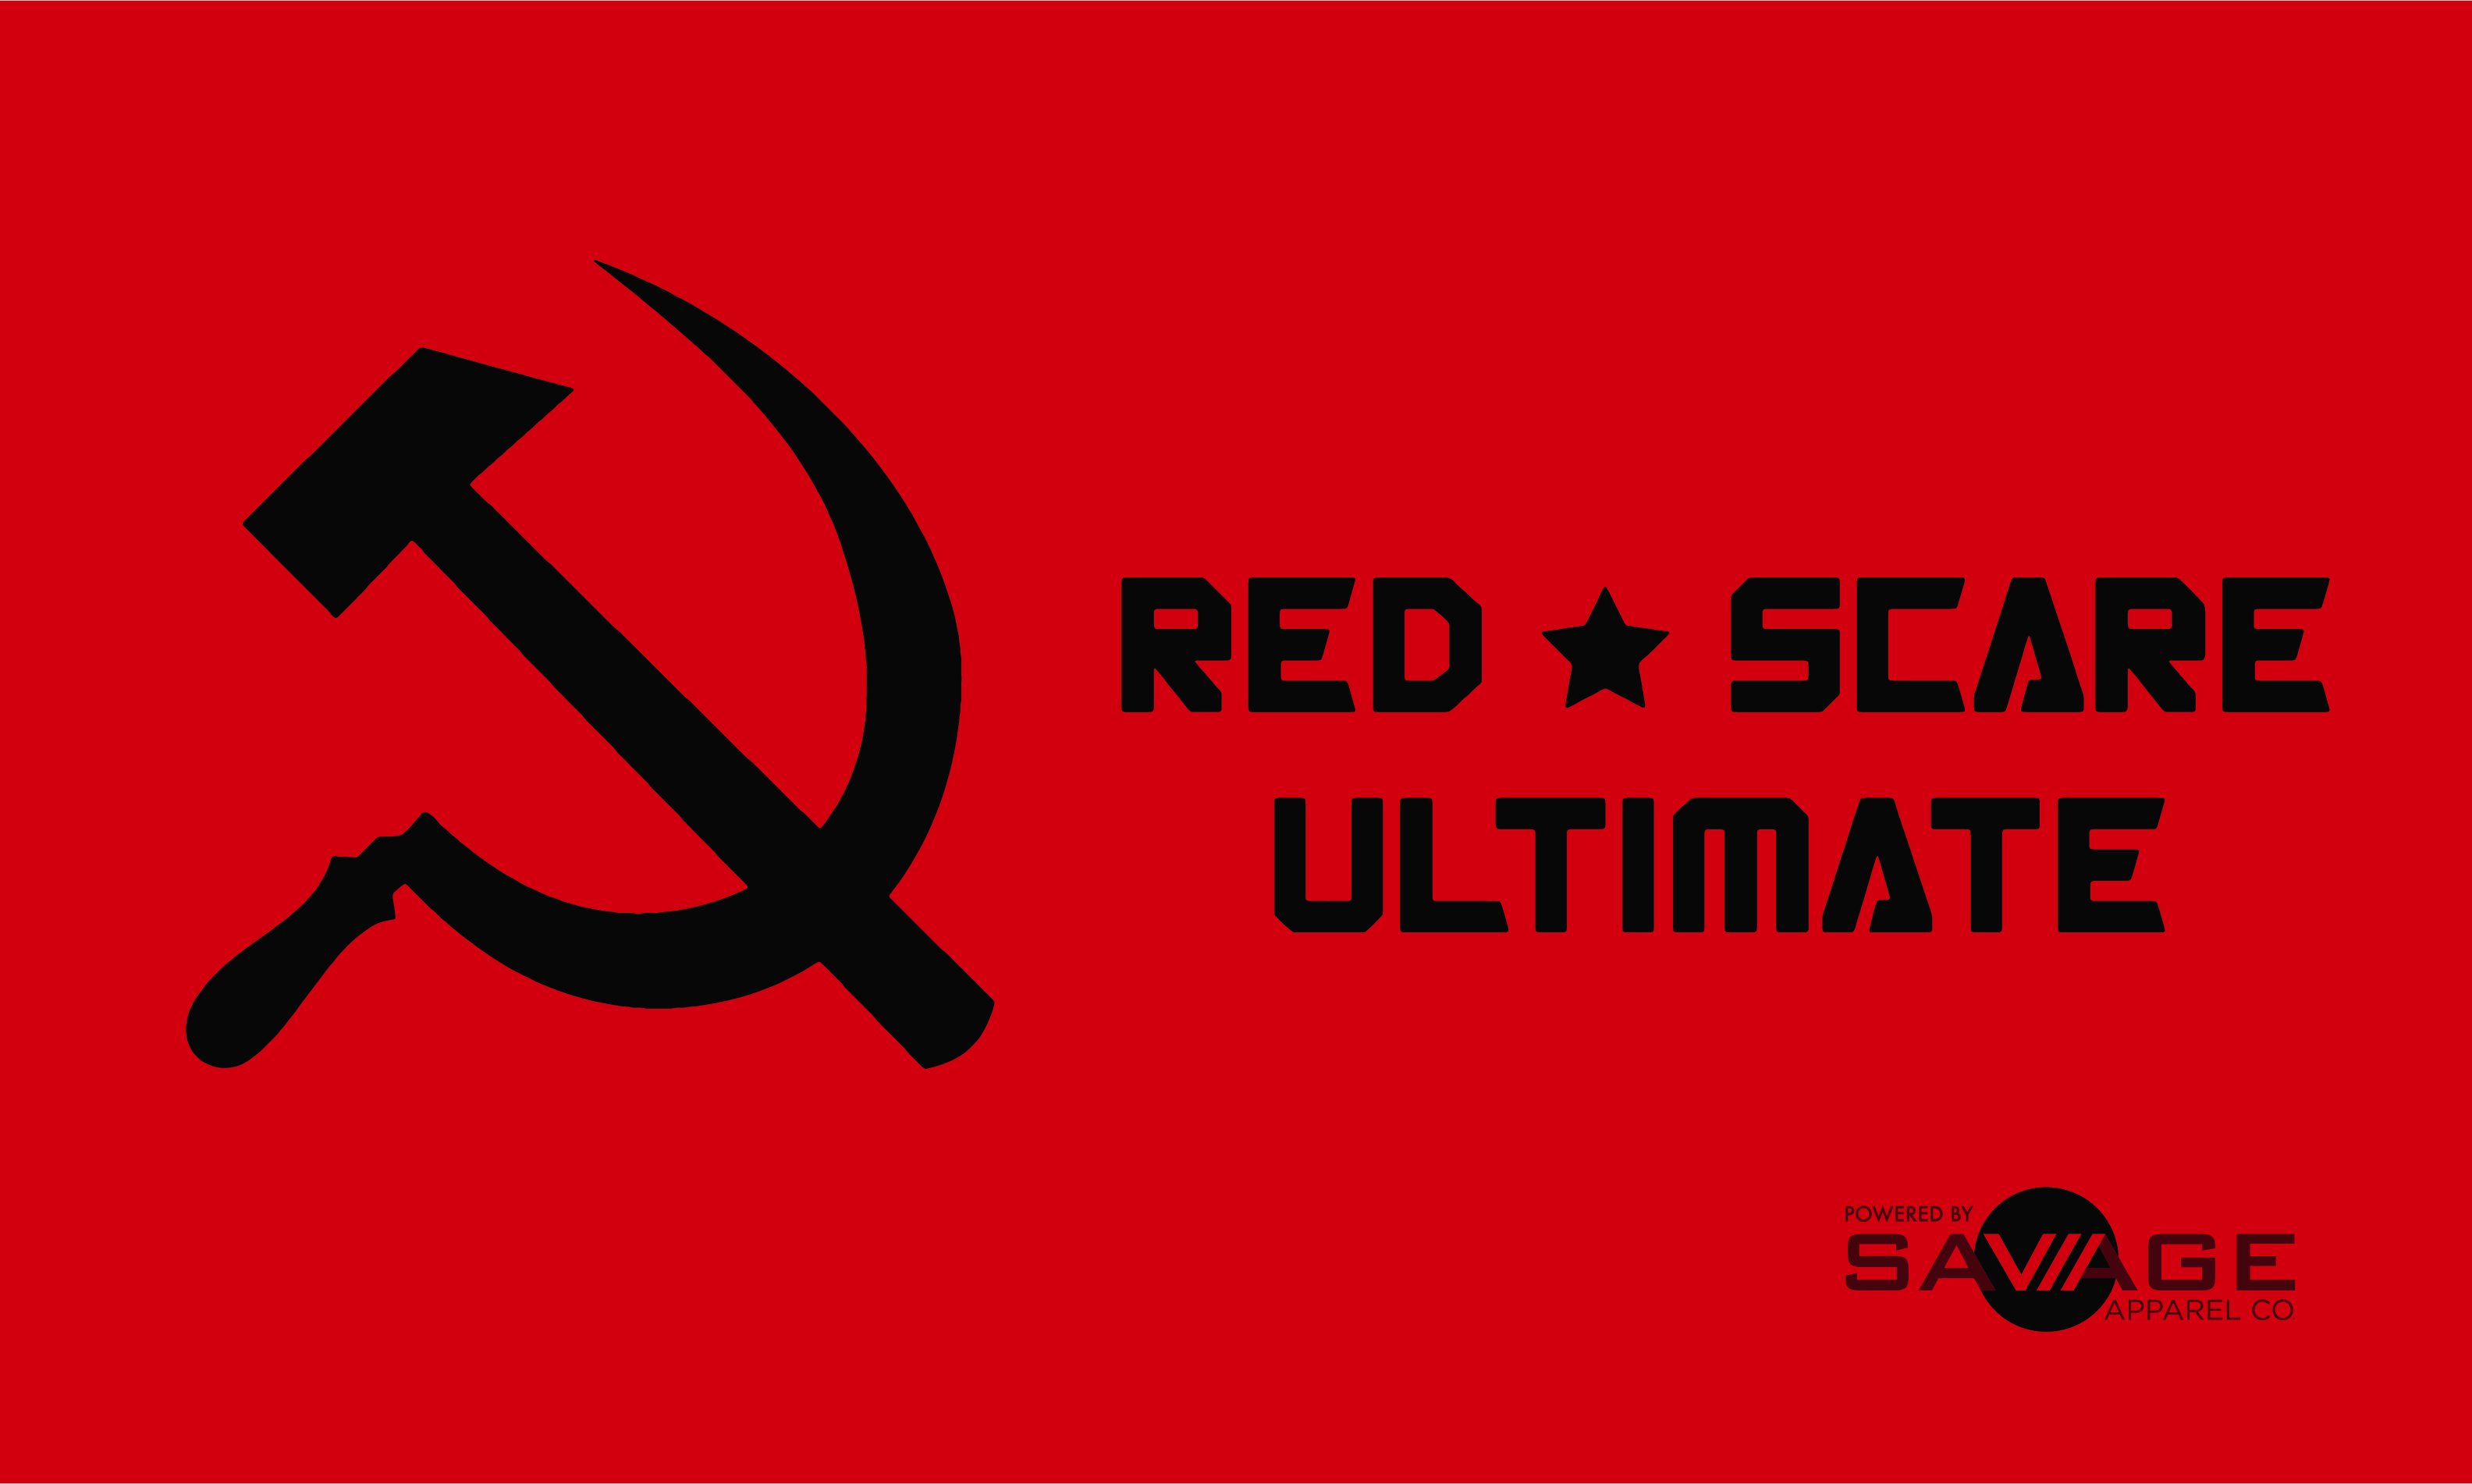 Red Scare Ultimate Flag